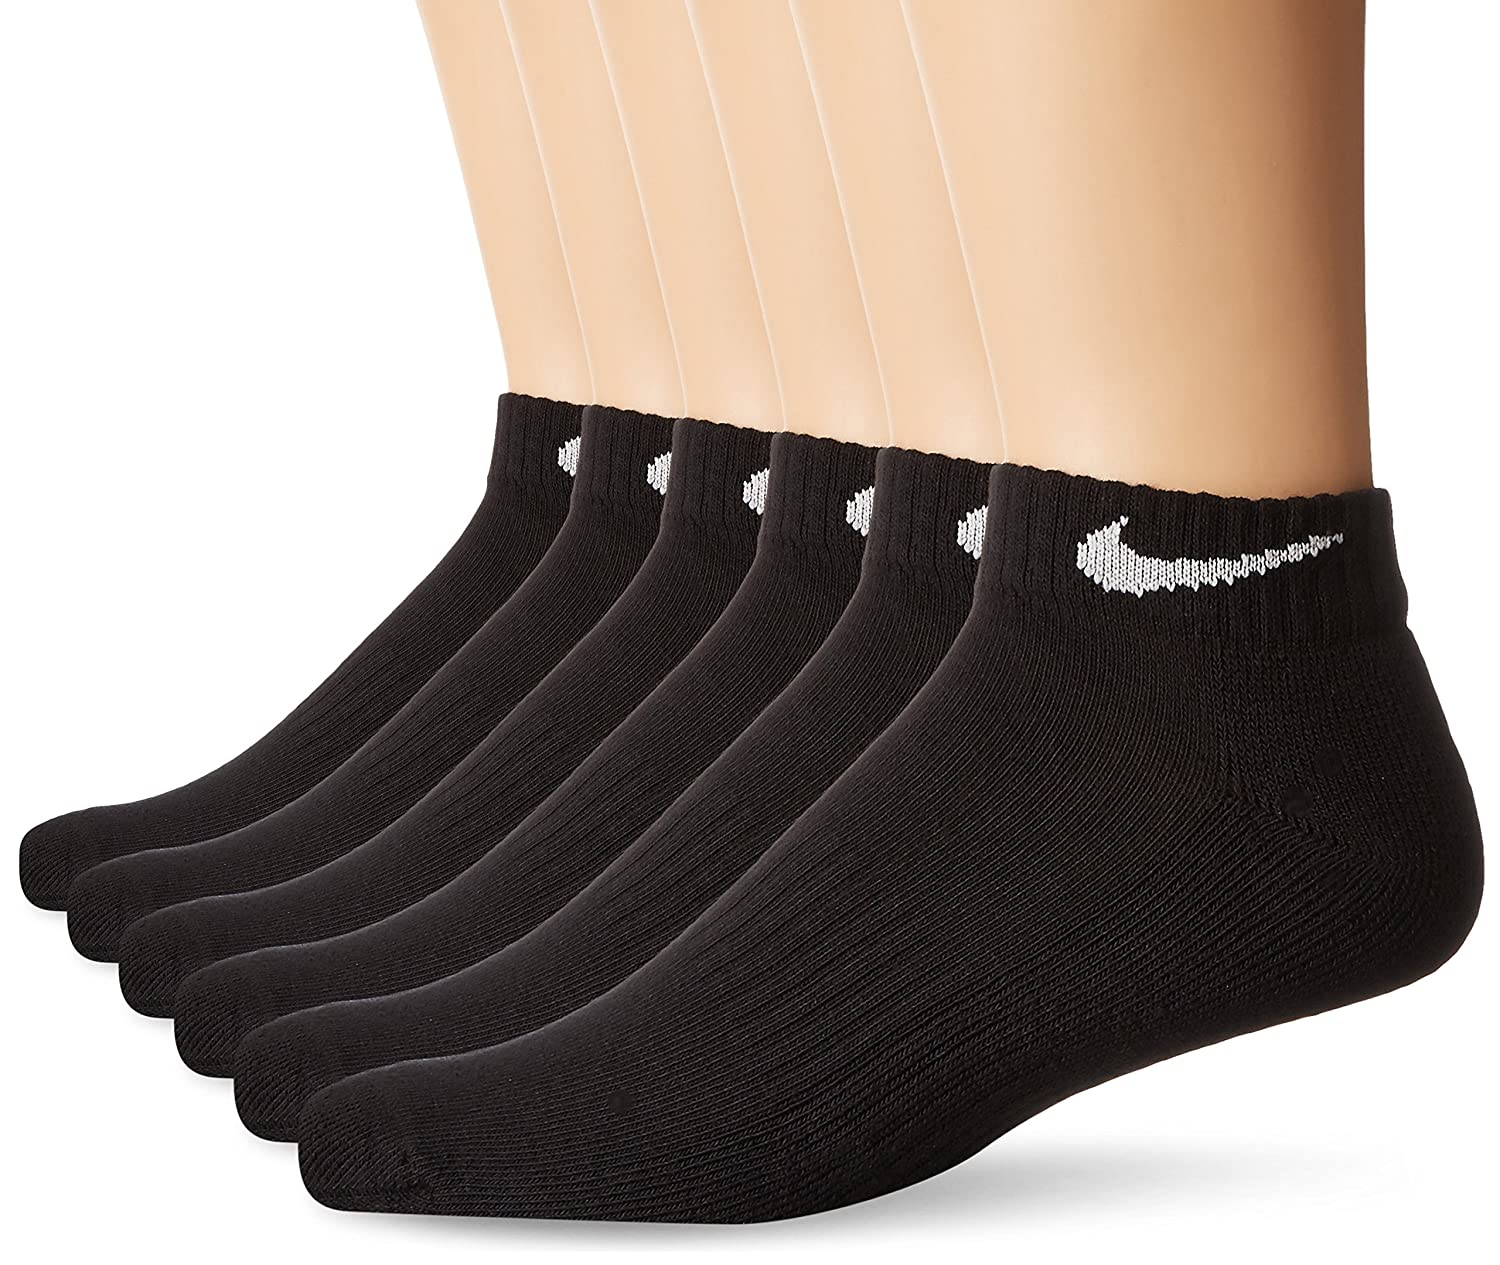 on sale d4862 6831d Amazon.com  NIKE Performance Cushion Low Rise Socks with Bag (6 Pairs)   Clothing